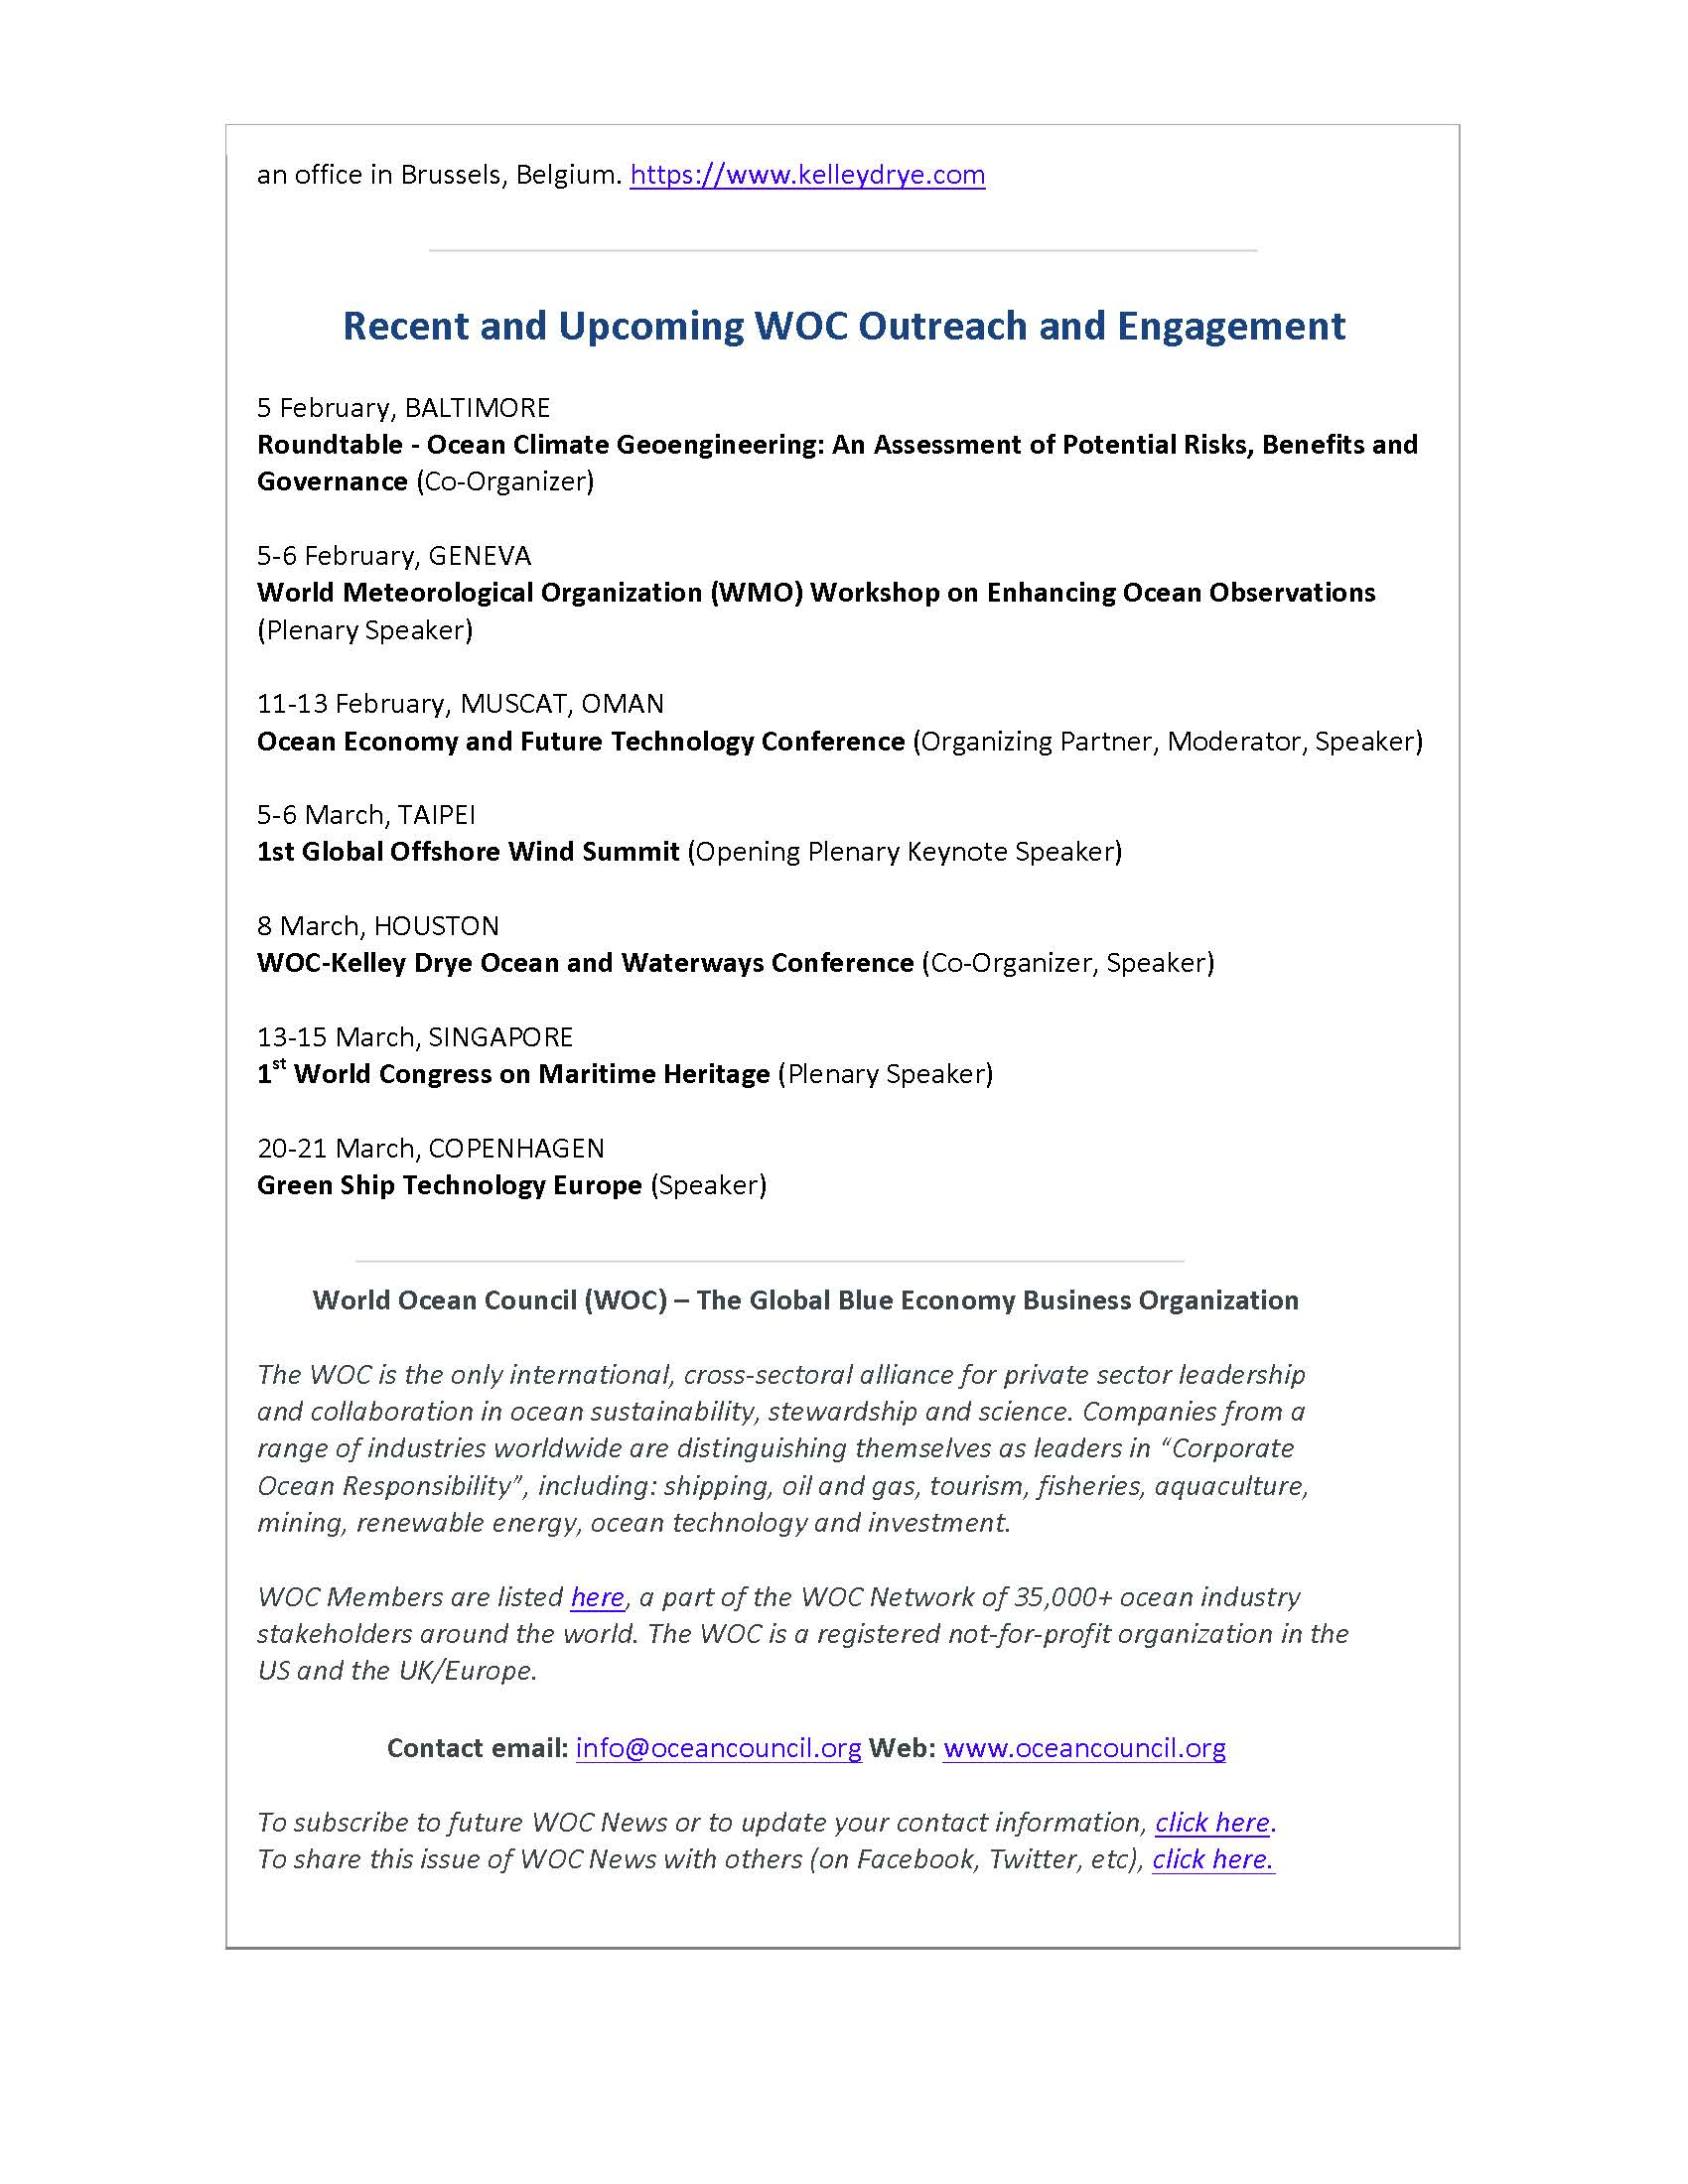 WOC and Law Firm Kelley Drye Collaborate to Present Ocean and Waterways Conference - 7 February 2019